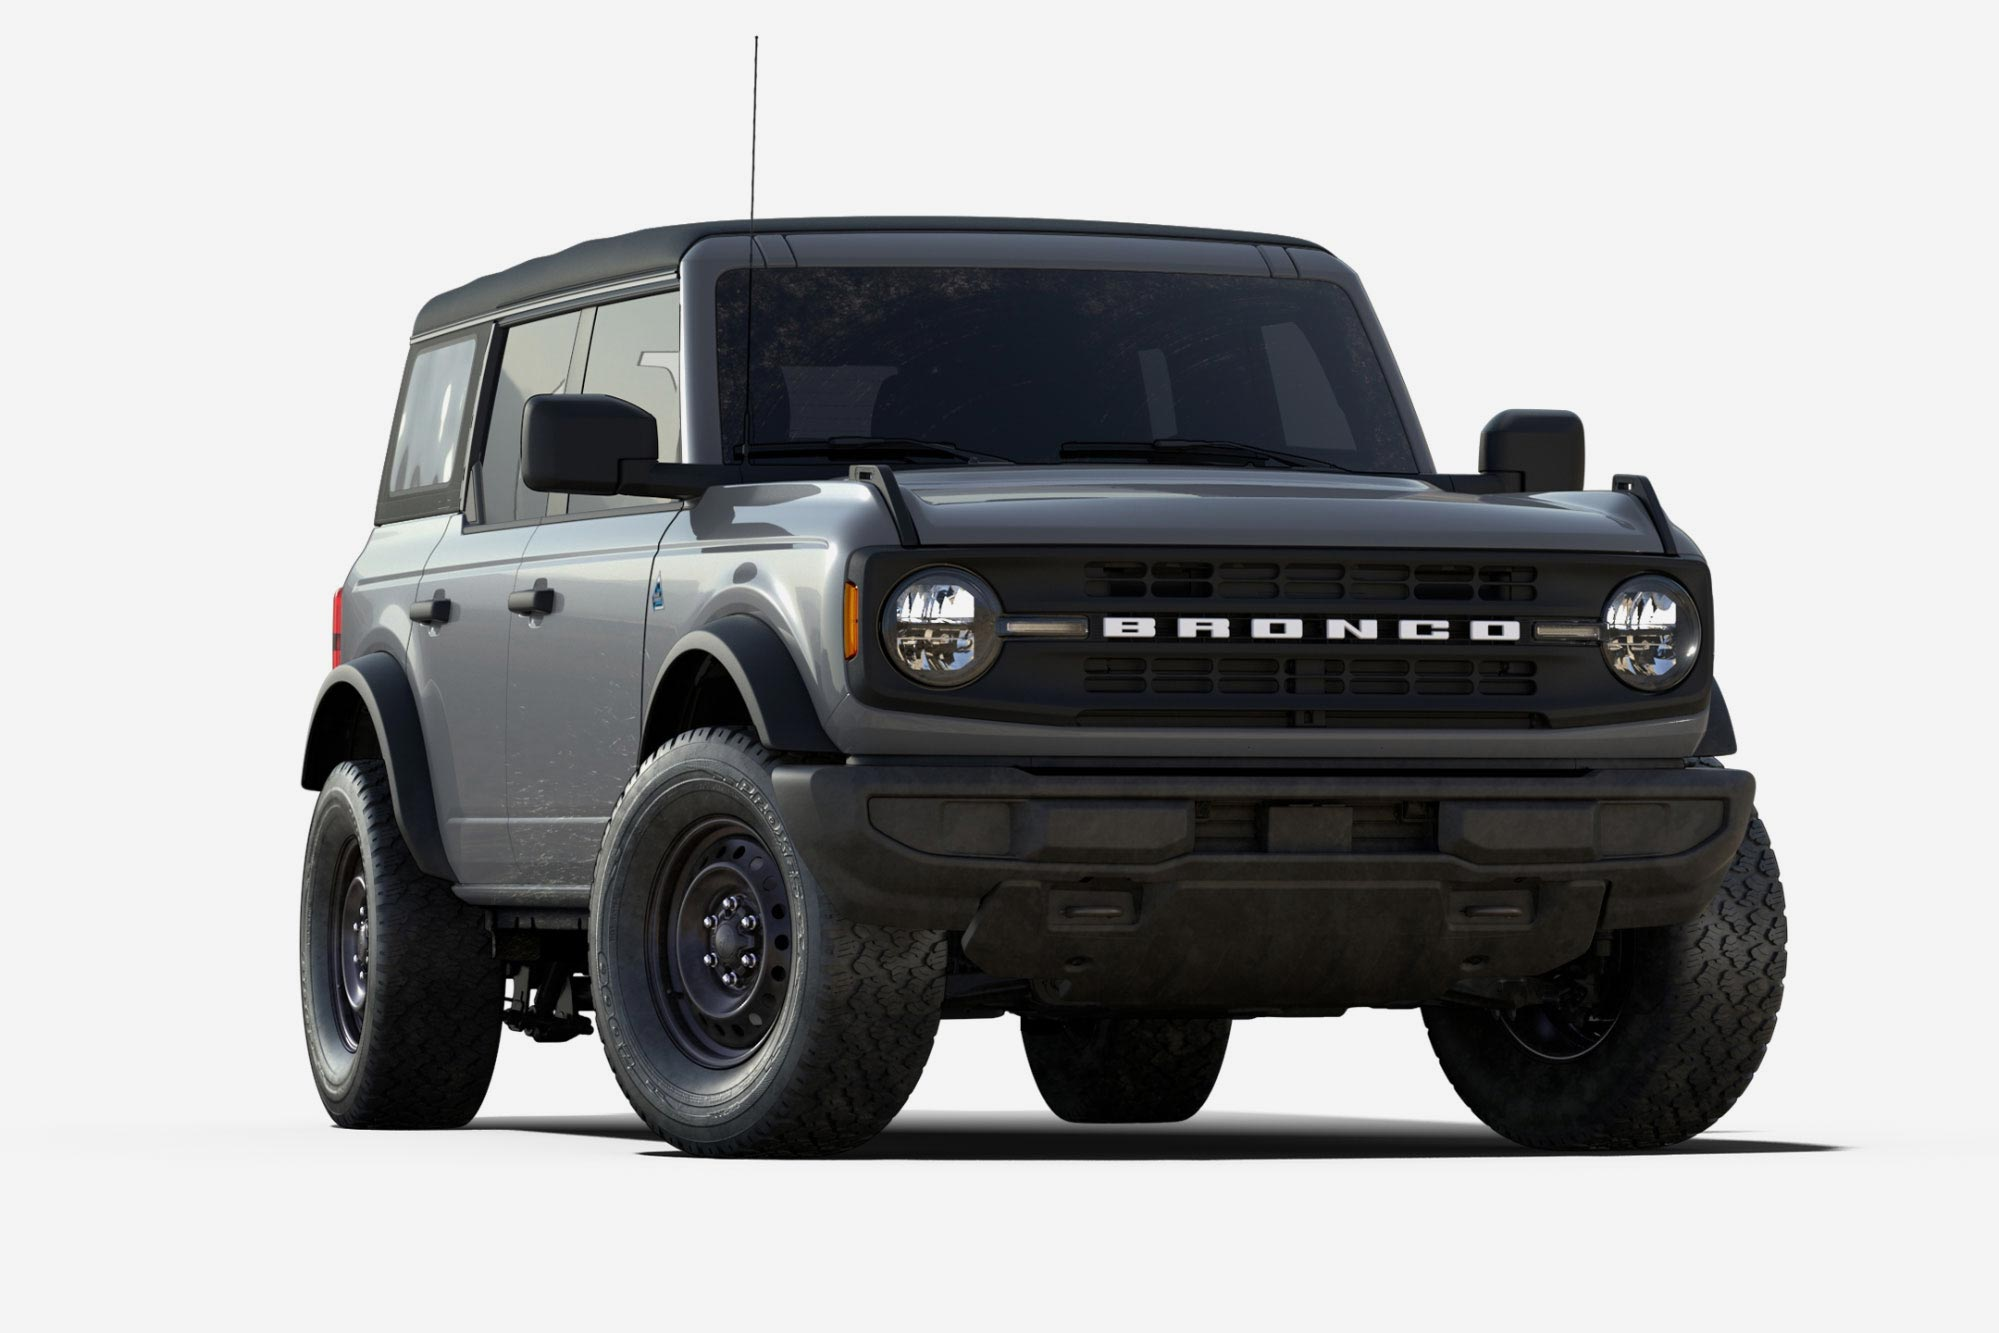 Ford Bronco Black Diamond